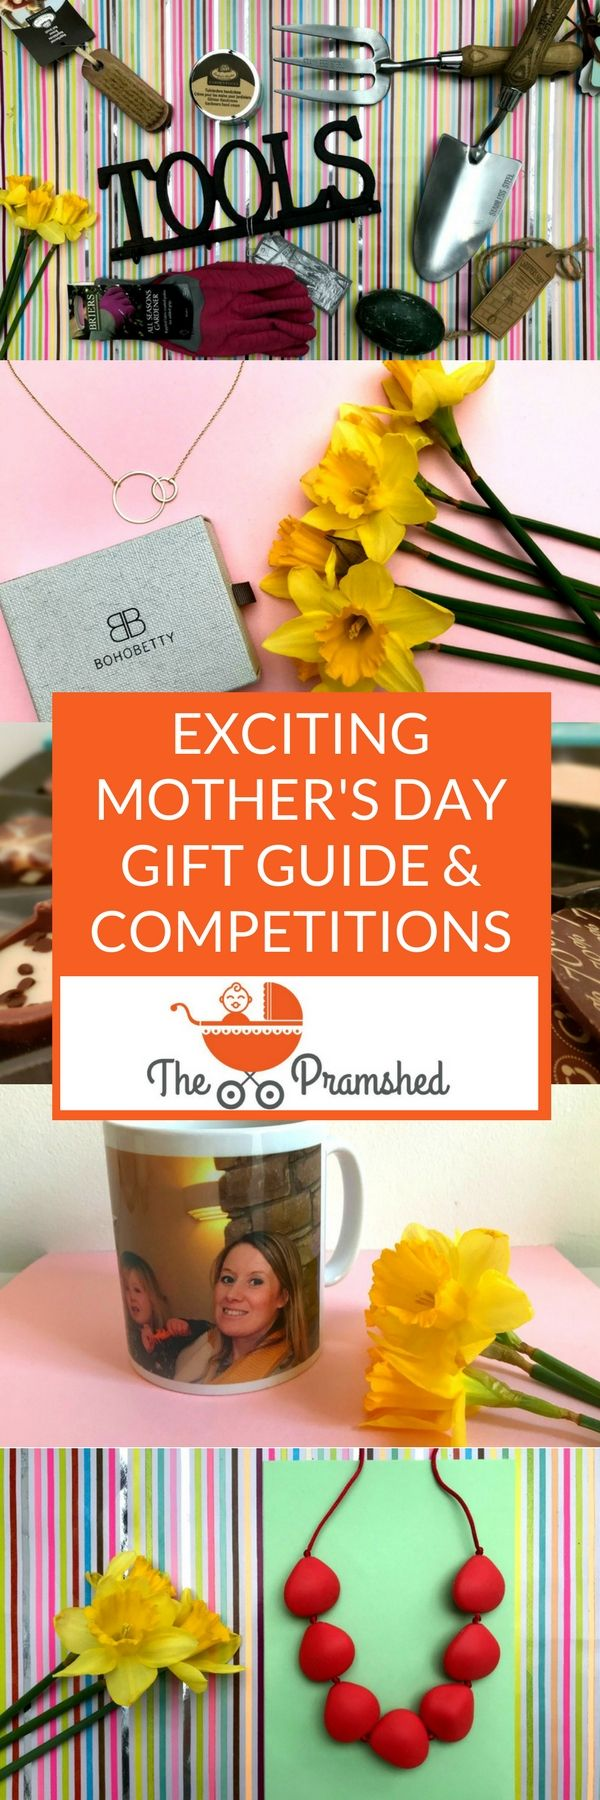 Mother's Day Gift Guide 2018 and Competitions featuring gorgeous brands #mothersday #motherdaygifts #mummy #mother #gifts #presents #mum #love #handmade #madewithlove #mothersdaypresents